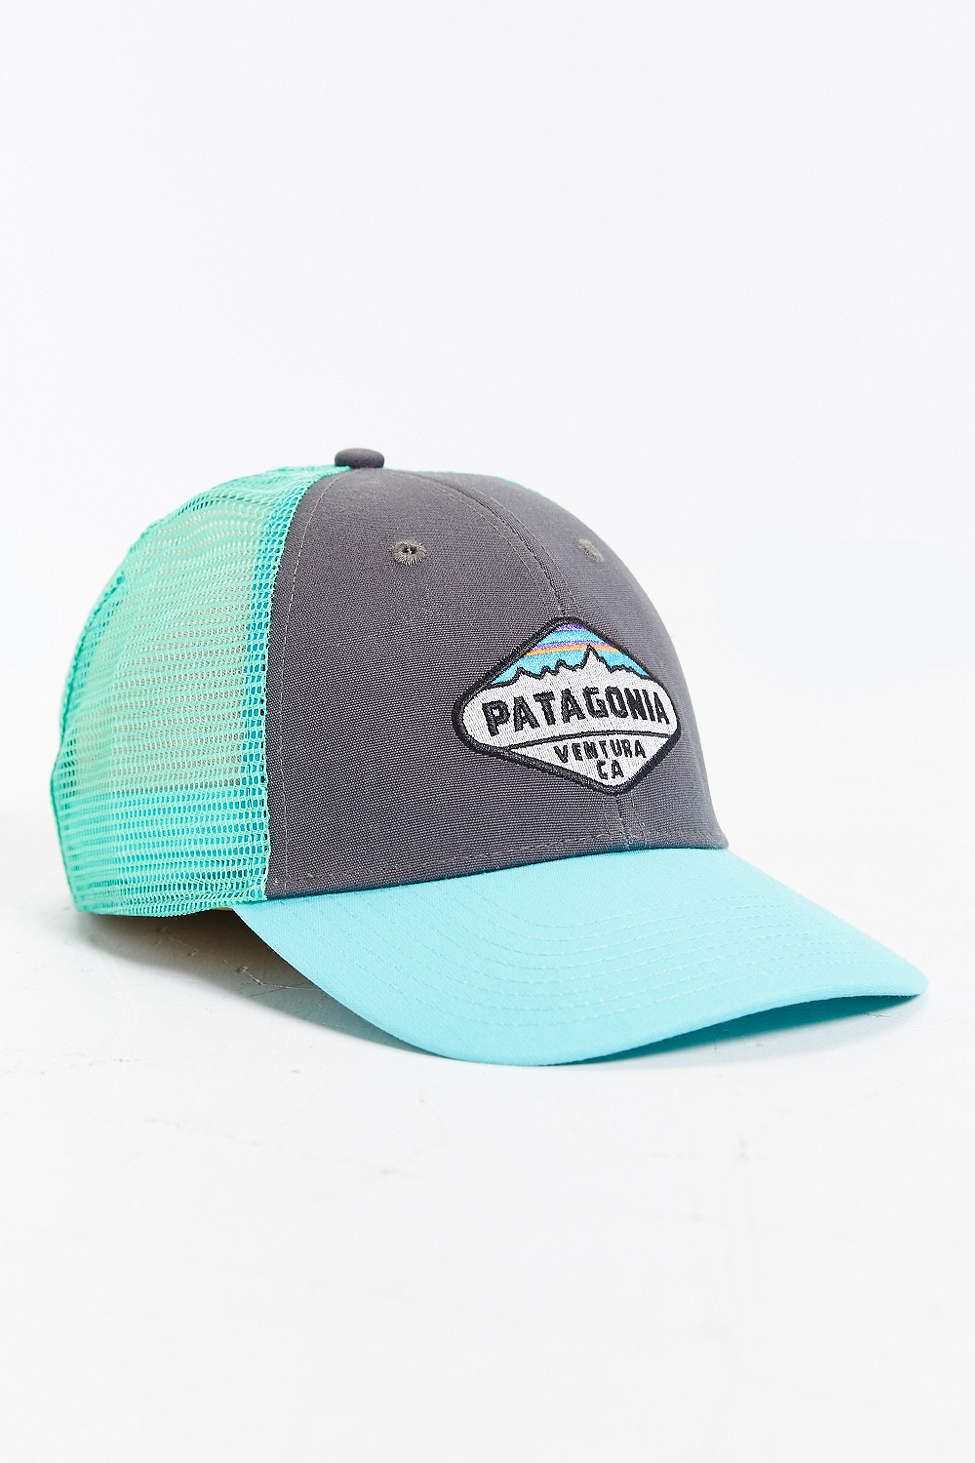 Patagonia Fitz Roy Crest LoPro Trucker Hat  98f155a5ad4a